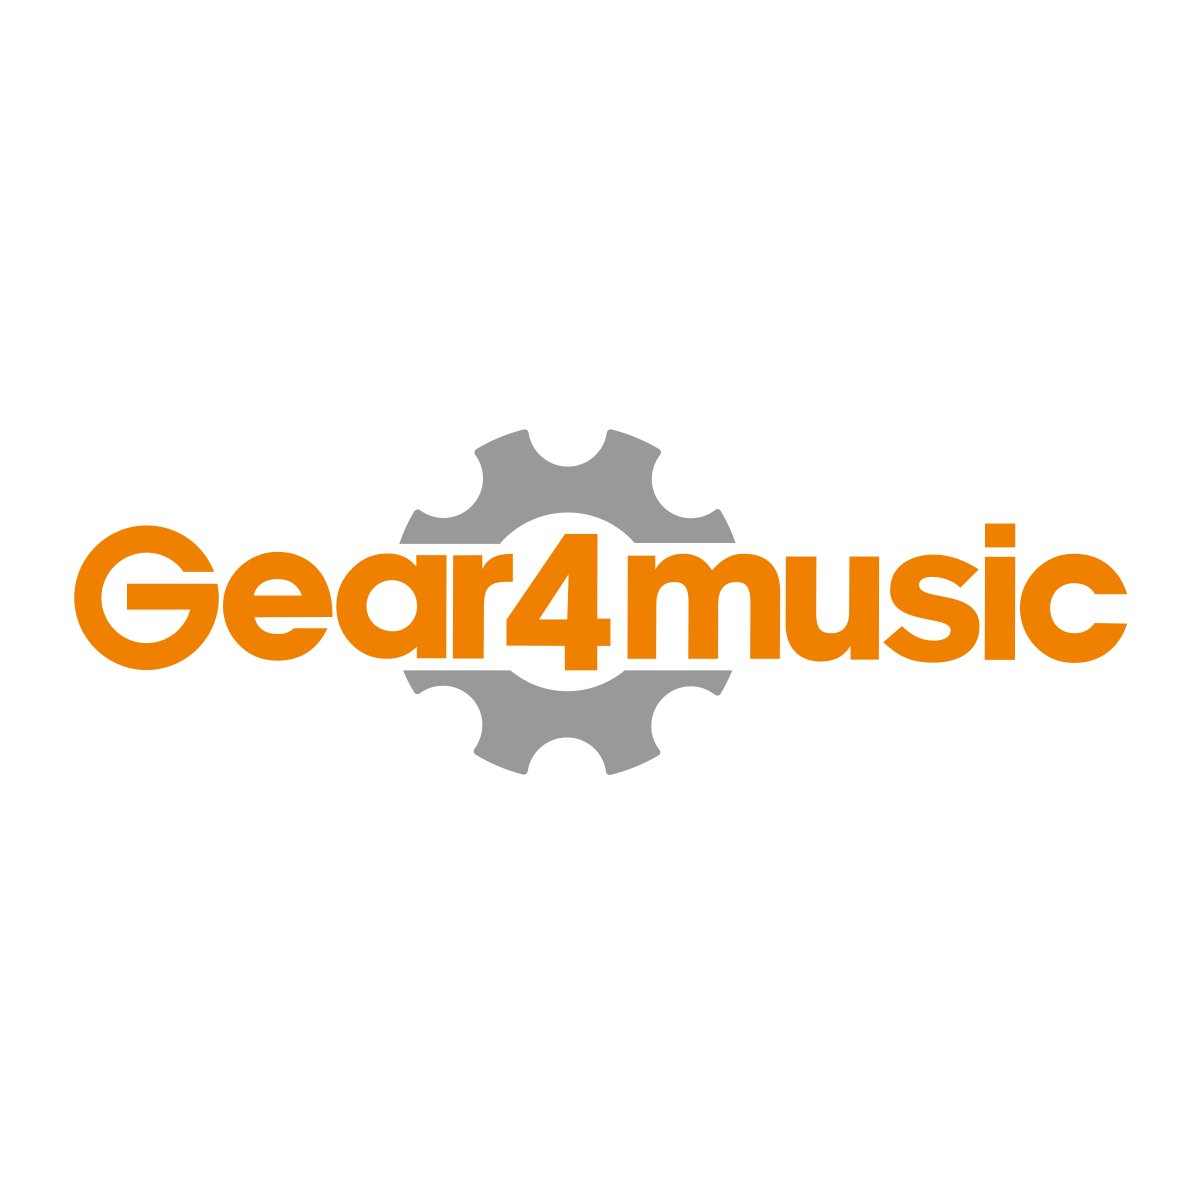 GDP-200 Pianoforte a Coda Digitale di Gear4music - B-Stock